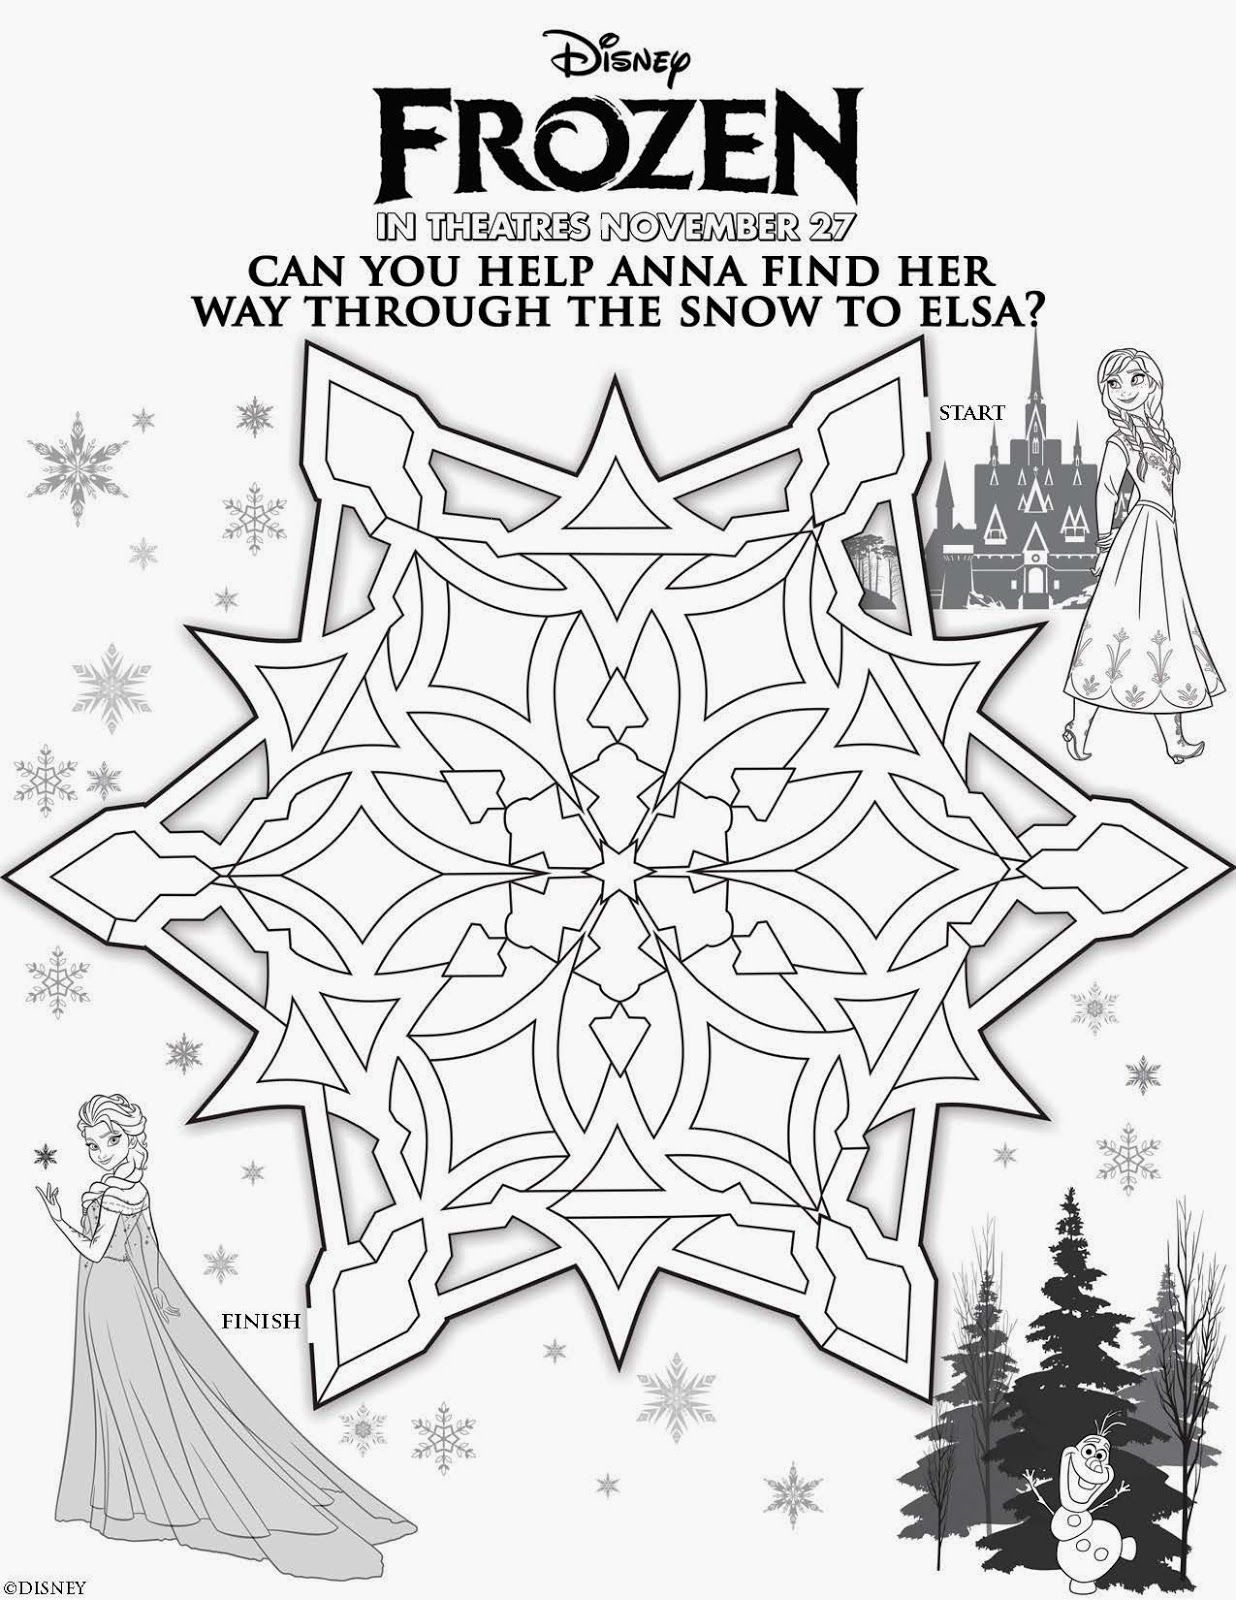 Lisa Shares Lots Of Fun Disneys Frozen Printables Coloring Pages Games And More Plus The Release New Apple Store Storybook App